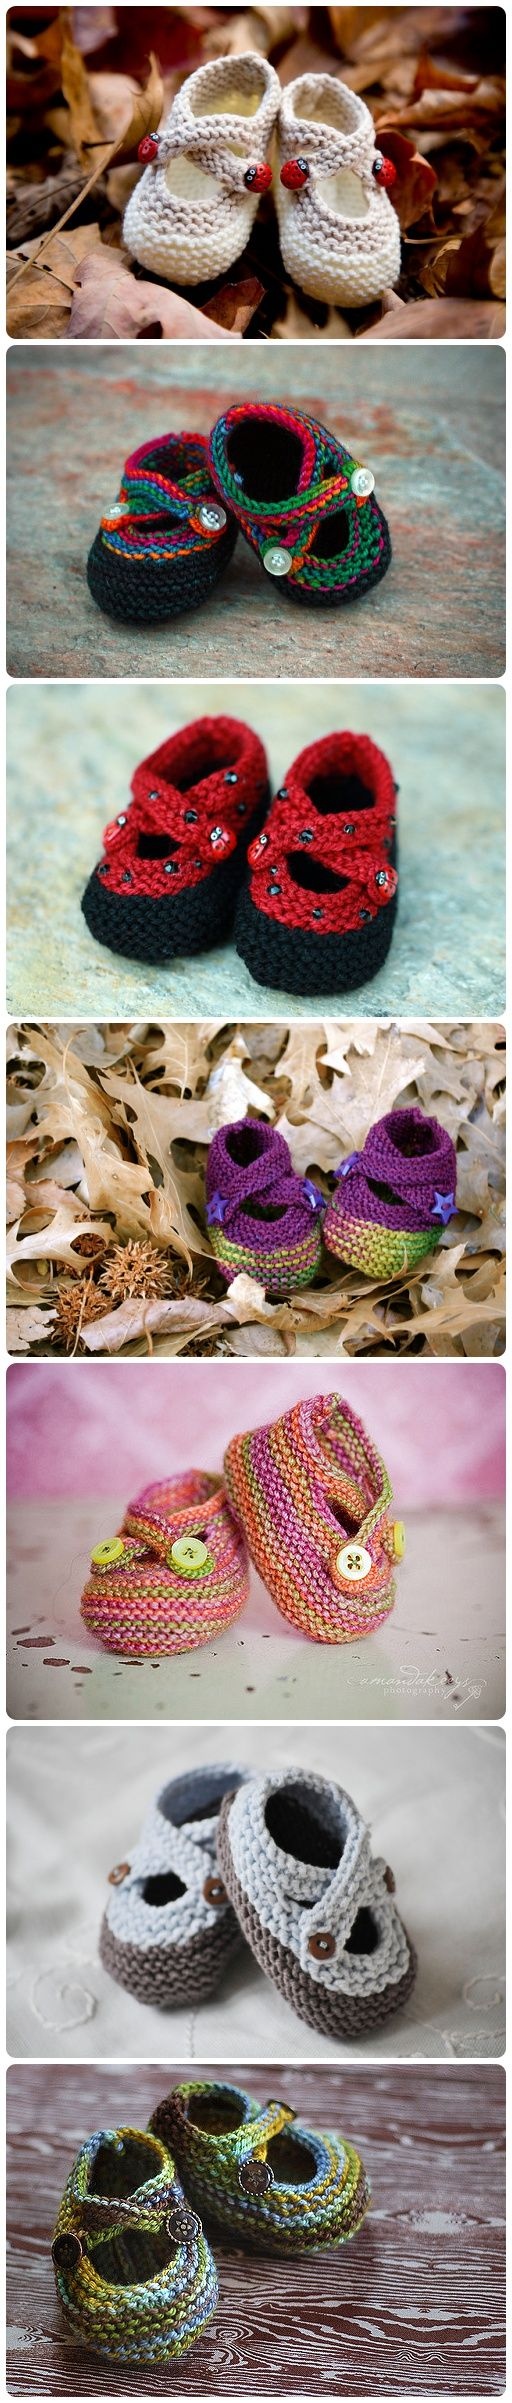 Knitted Saartje's Bootees with Free Pattern